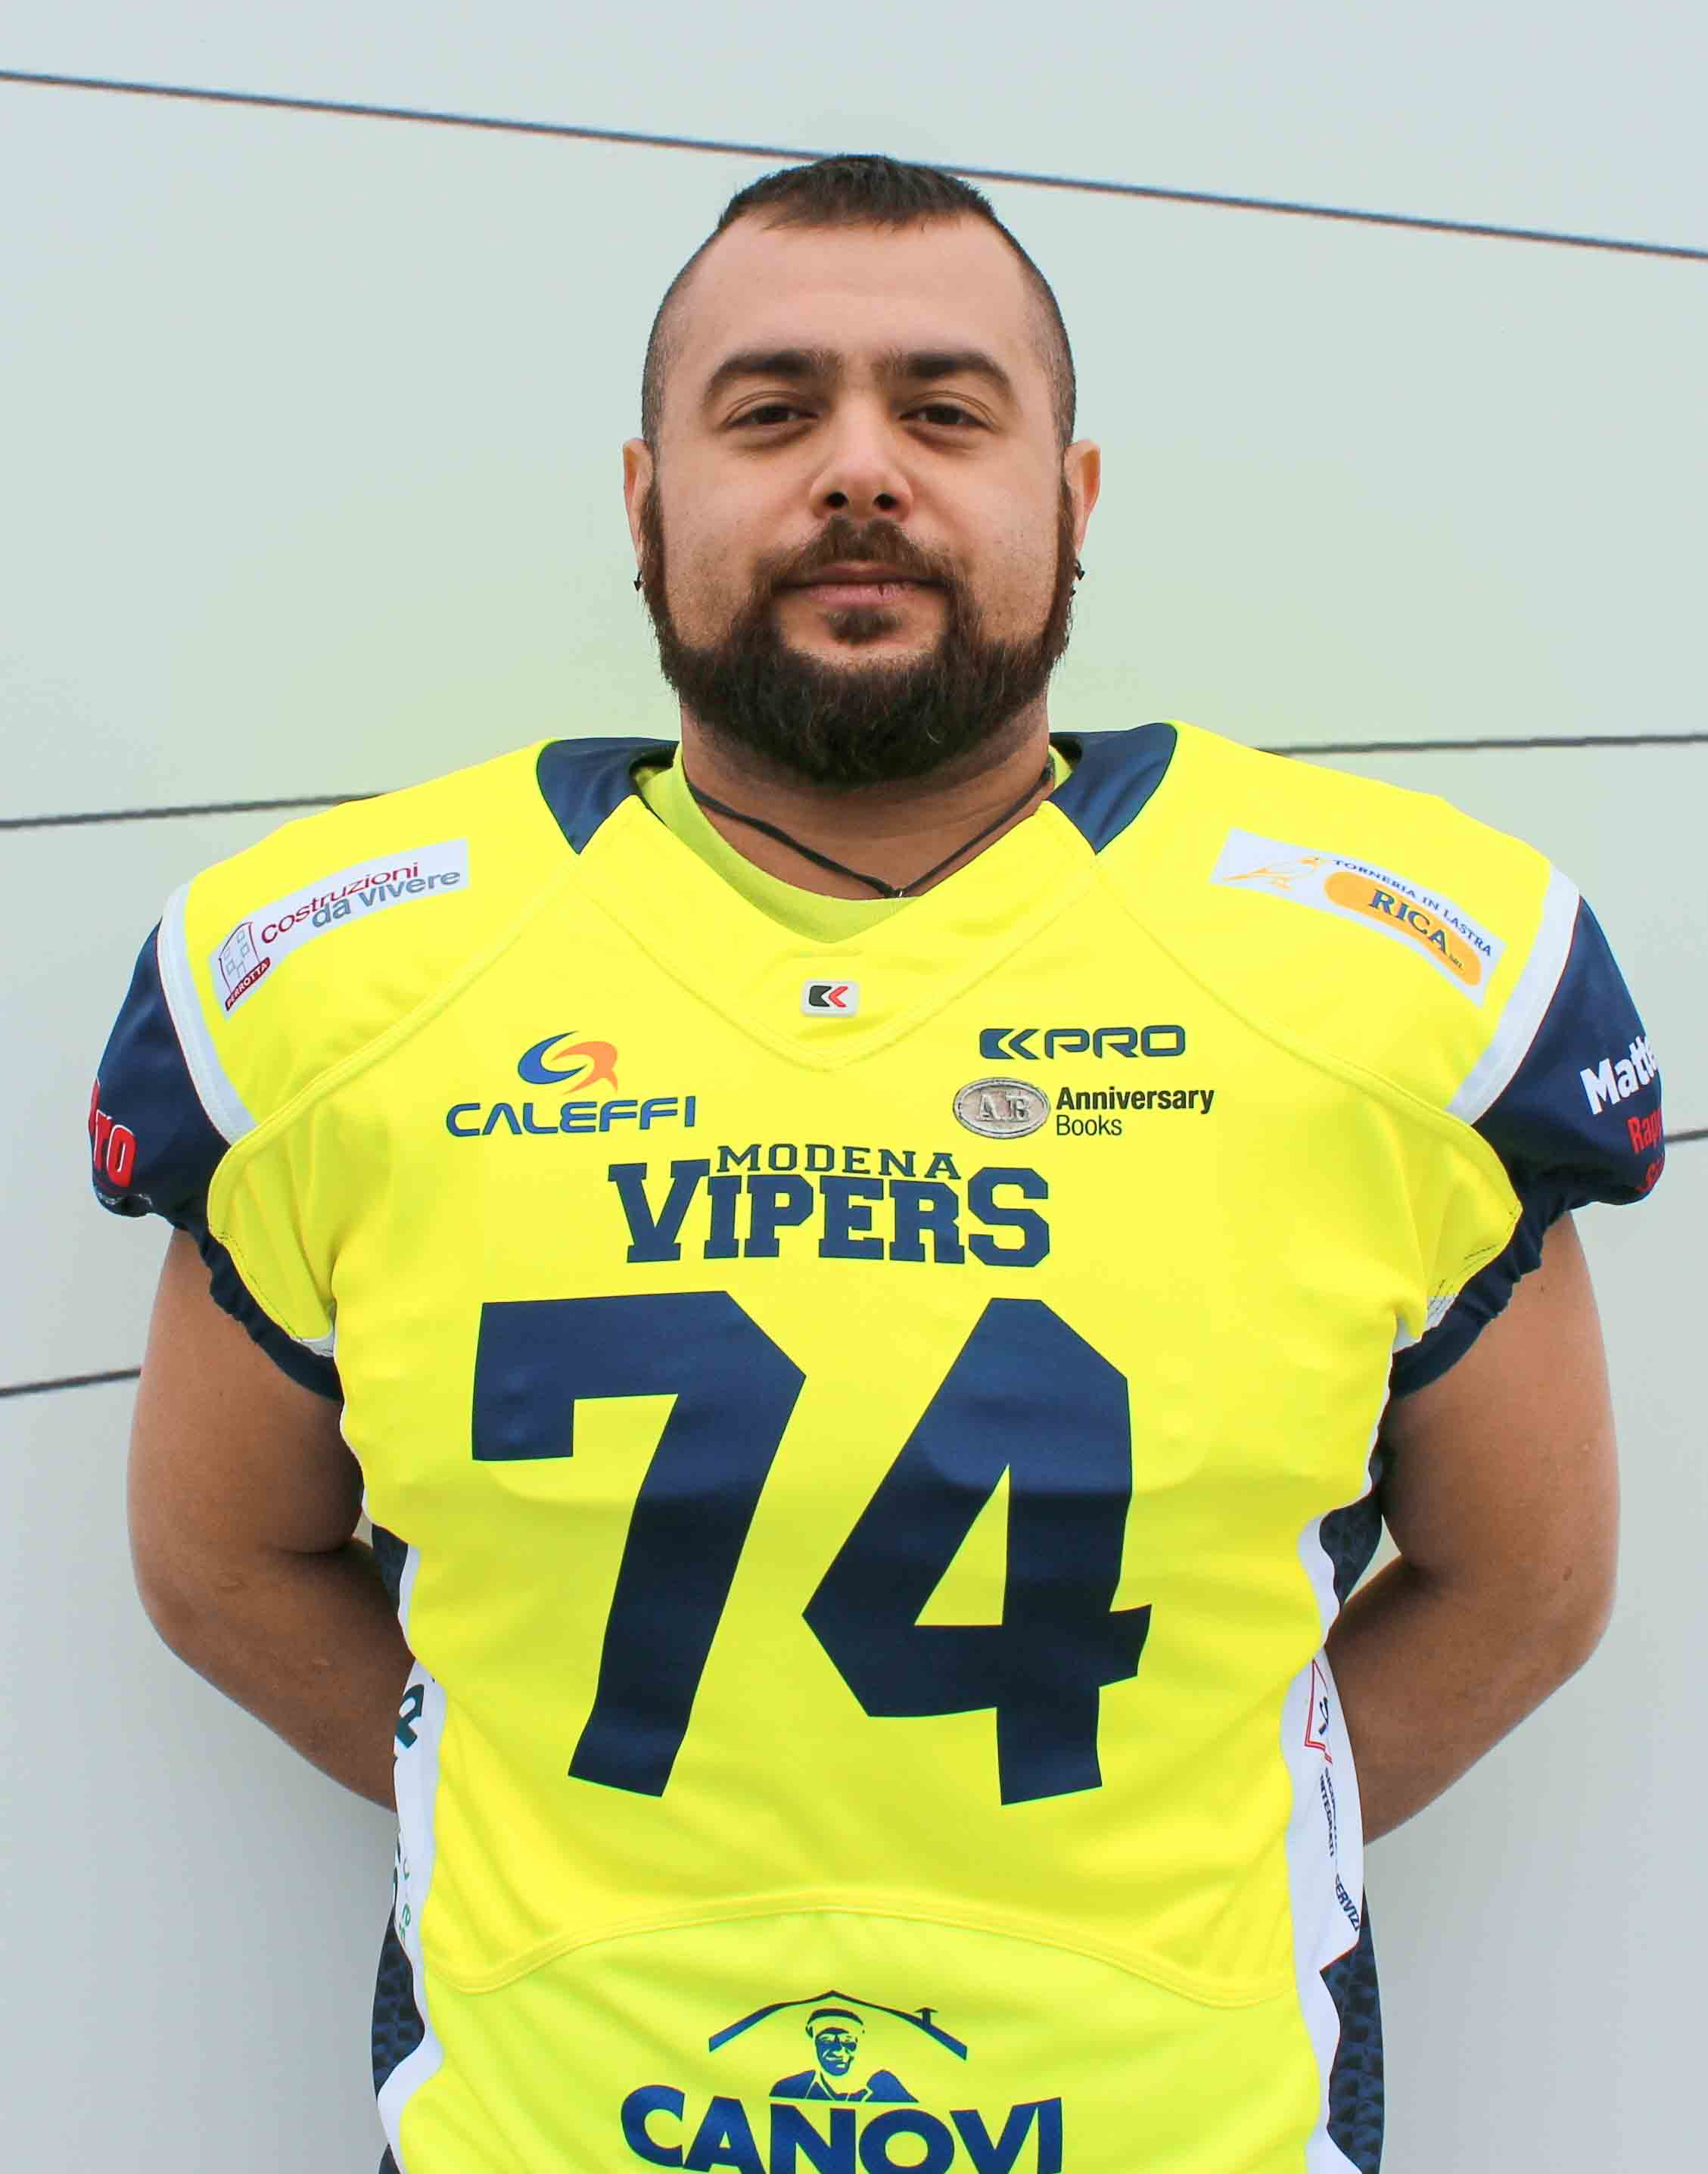 Briglia Marcello #74 DL